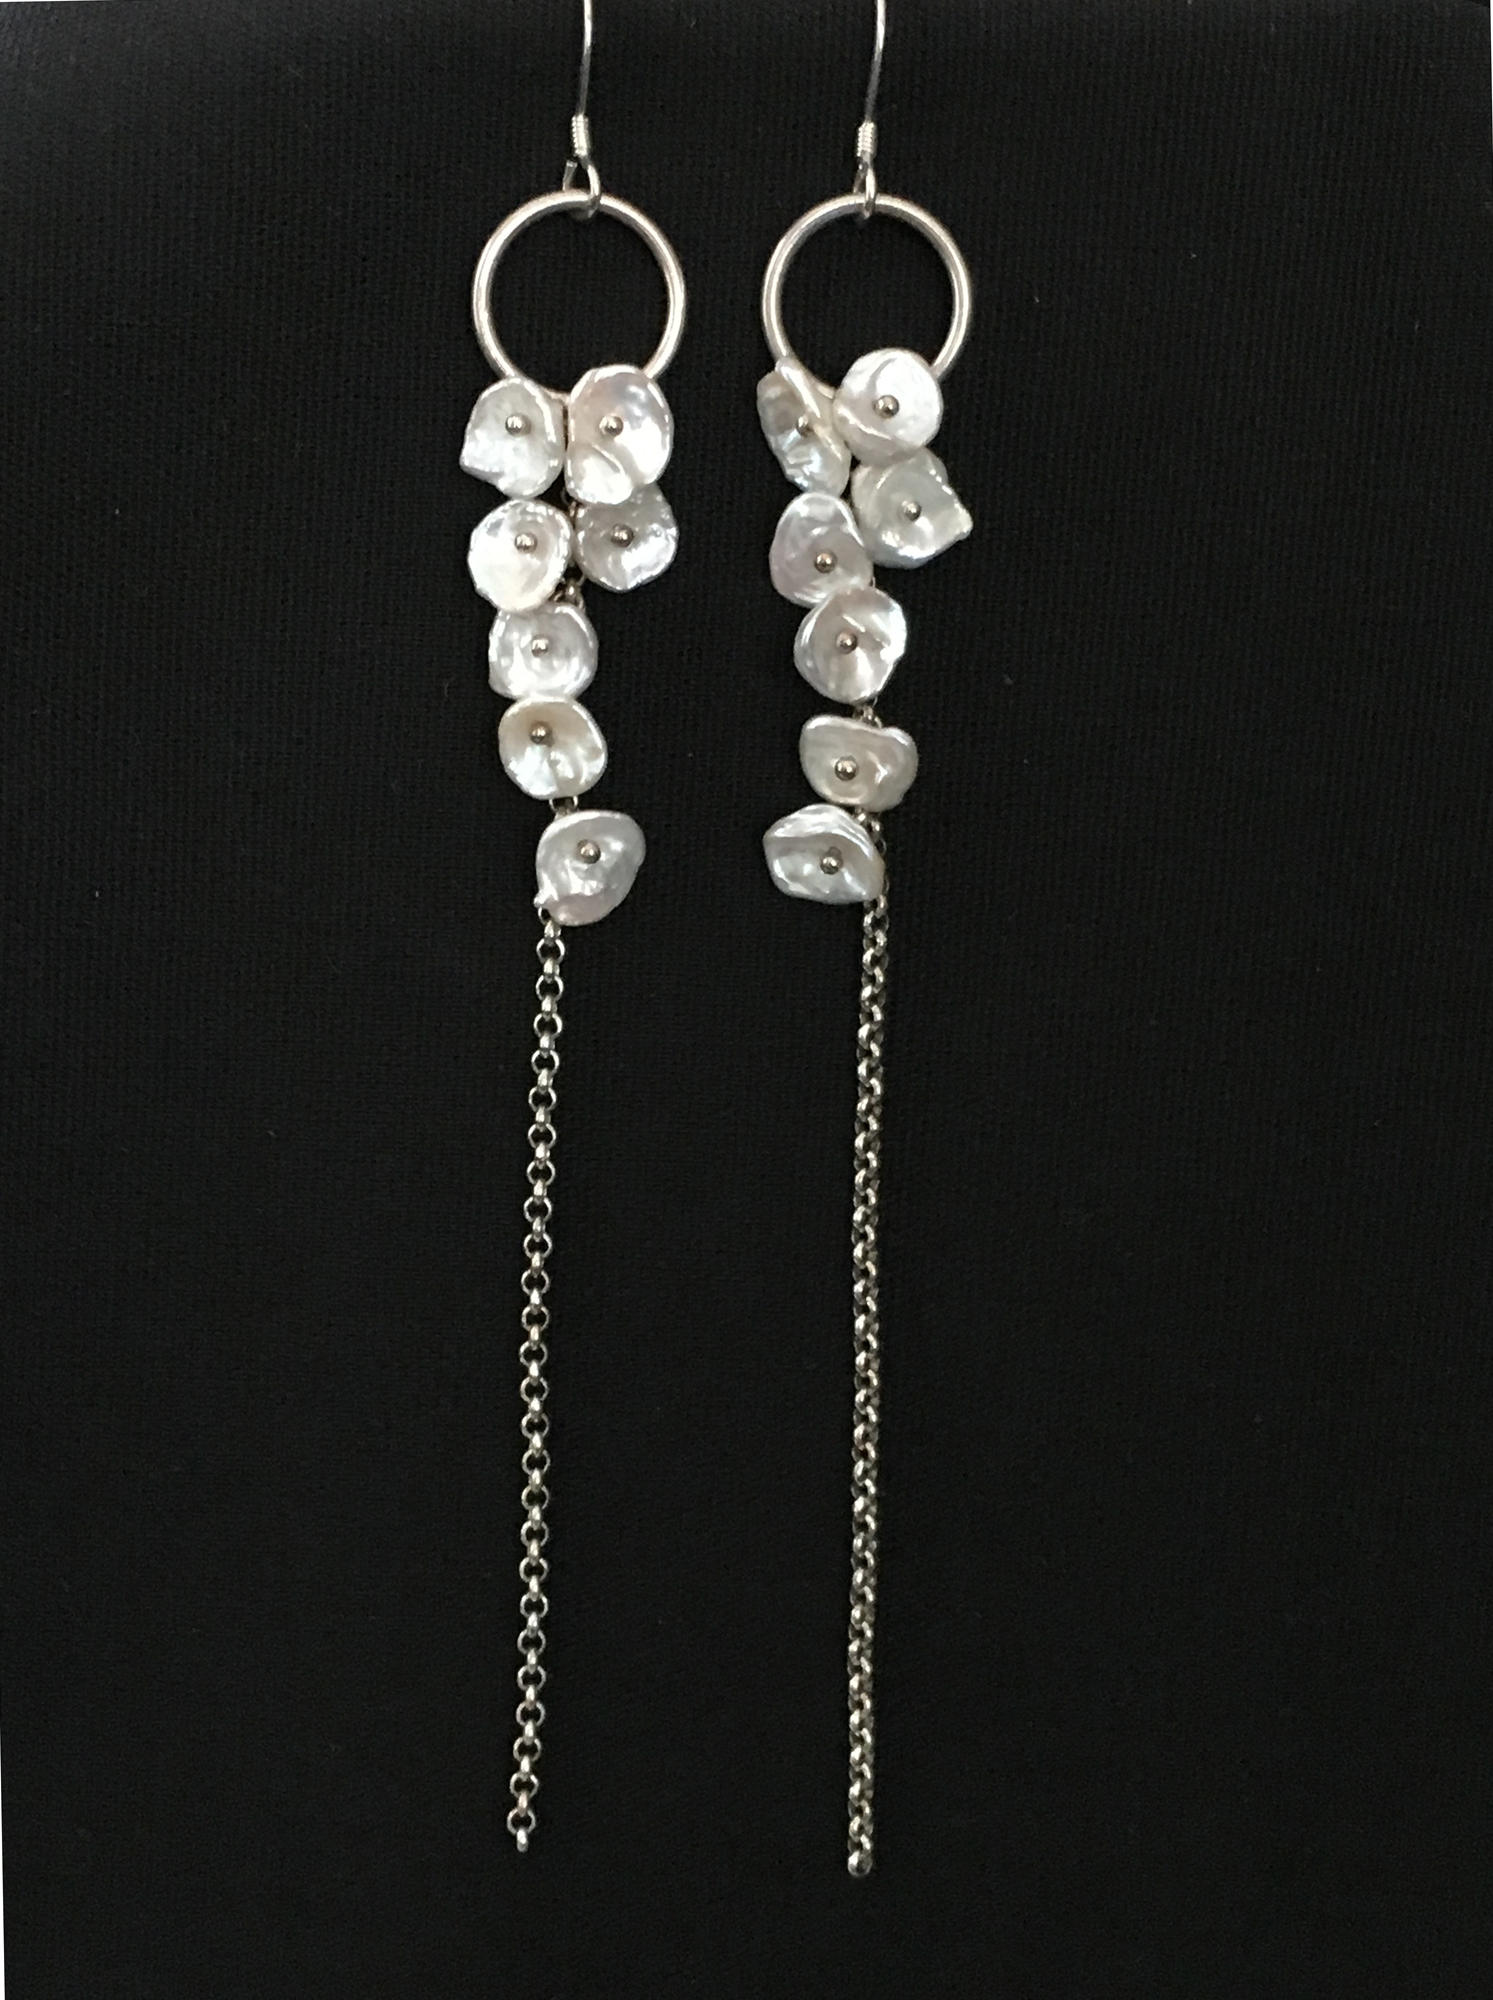 Petals   2008  Necklace & Earrings  Freshwater Keishi Pearl, Sterling Silver